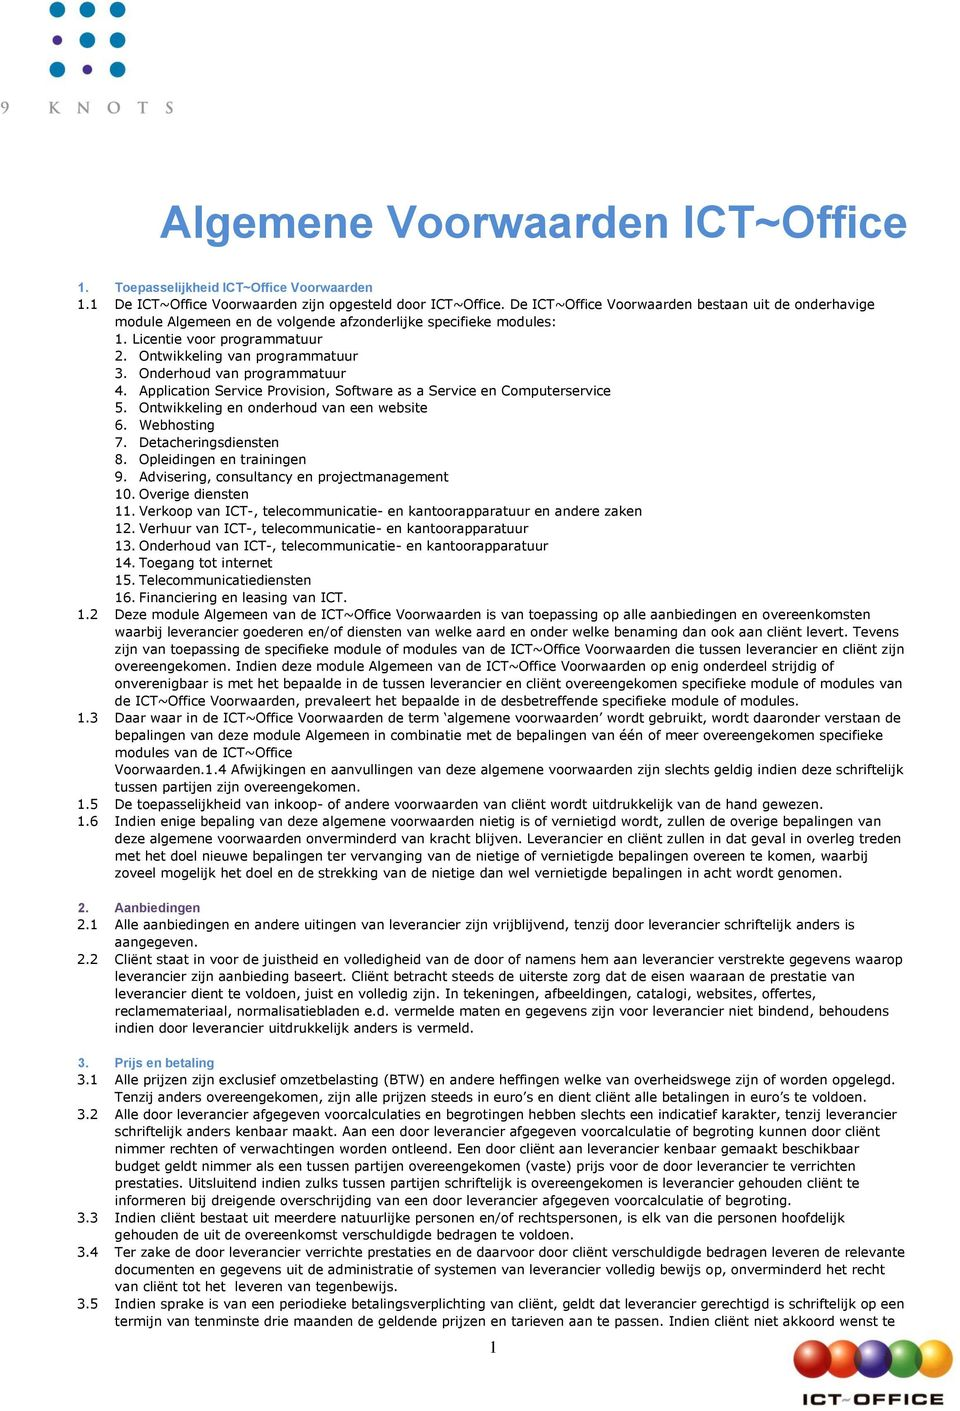 Onderhoud van programmatuur 4. Application Service Provision, Software as a Service en Computerservice 5. Ontwikkeling en onderhoud van een website 6. Webhosting 7. Detacheringsdiensten 8.